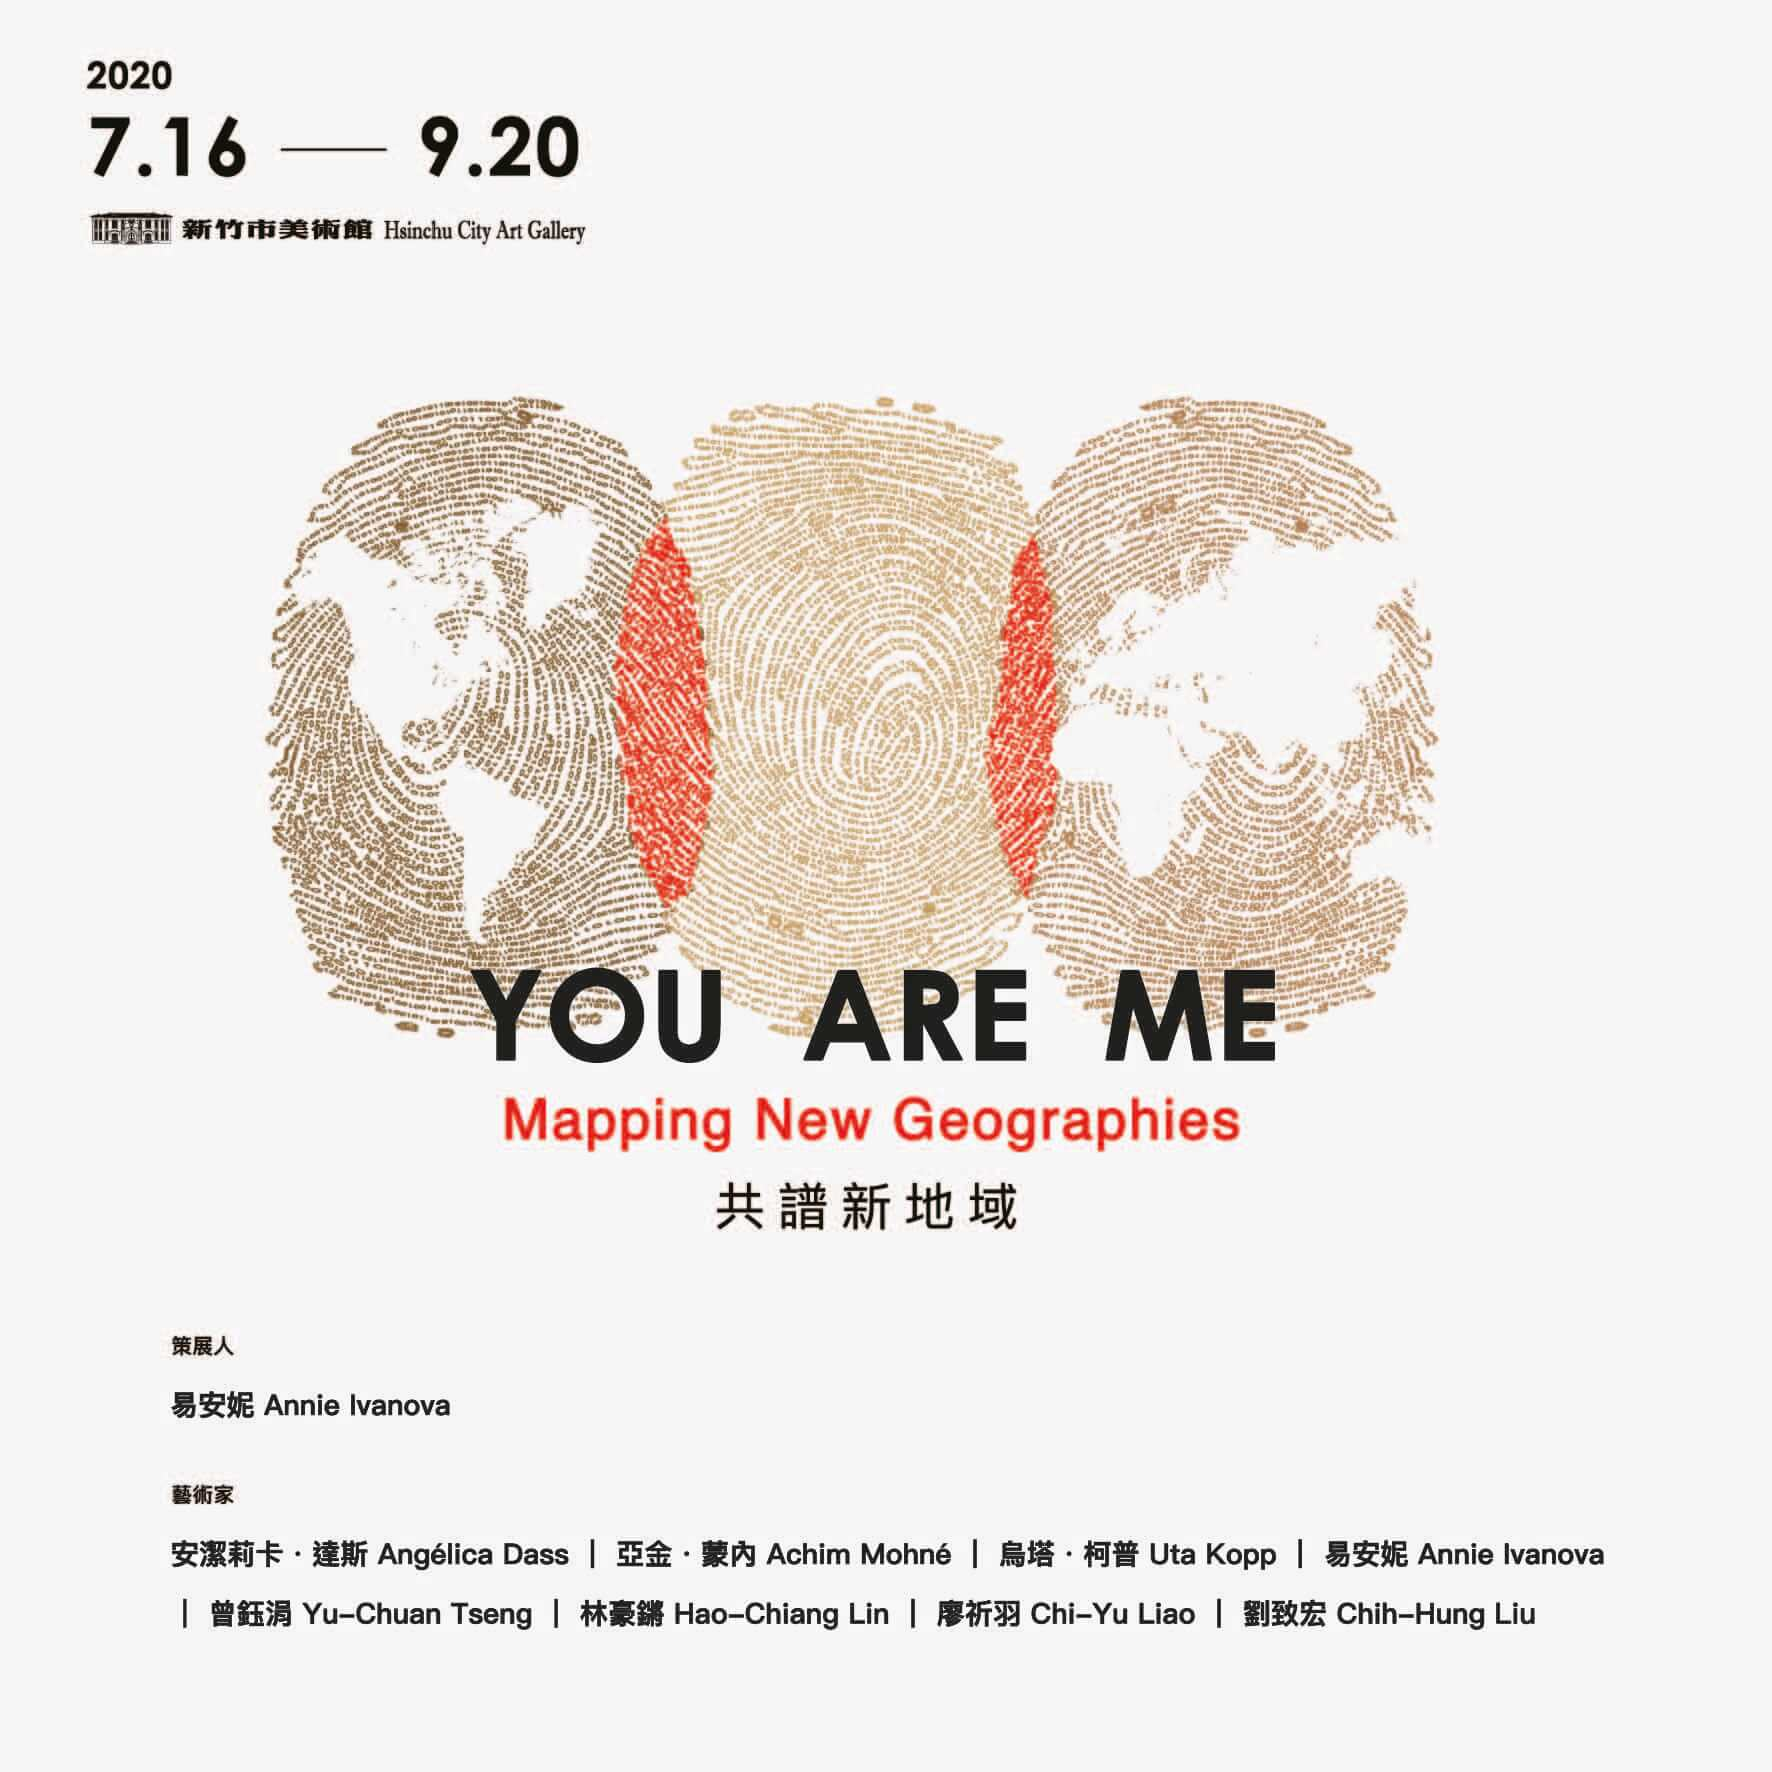 https://www.hsinchucitymuseum.org/YOU ARE ME-共譜新地域